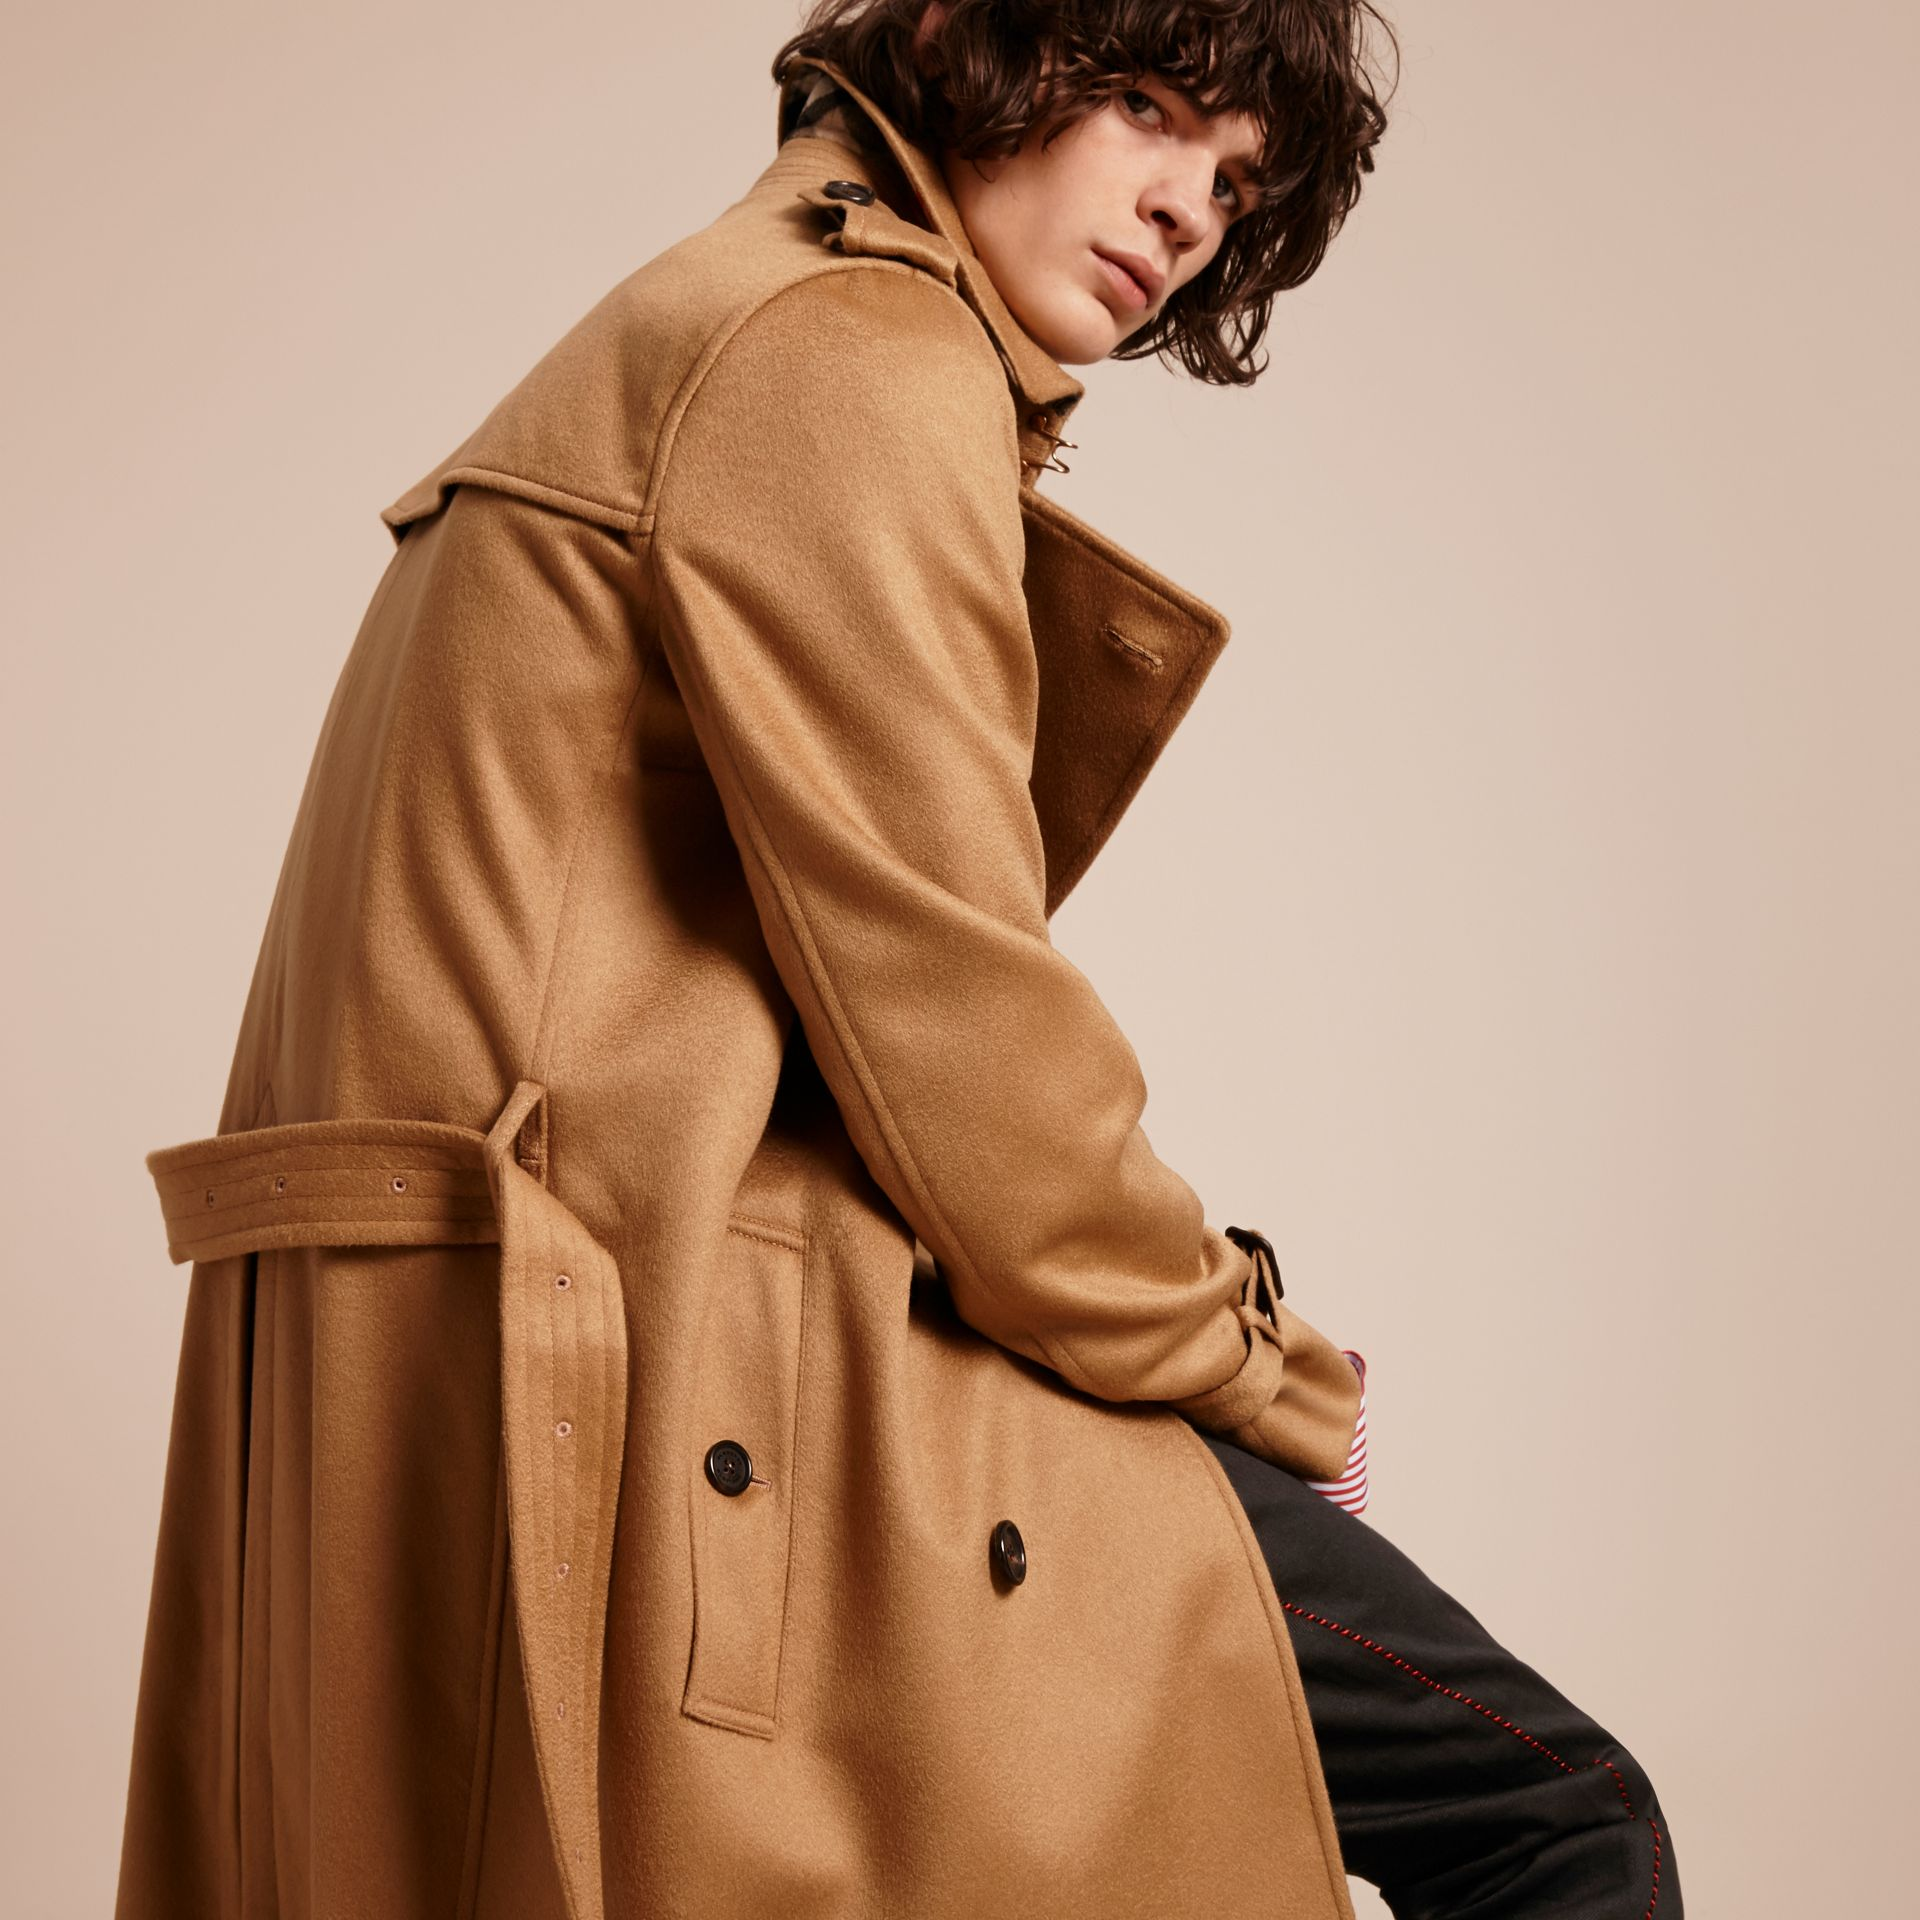 Cashmere Trench Coat in Dark Camel - Men | Burberry - gallery image 7